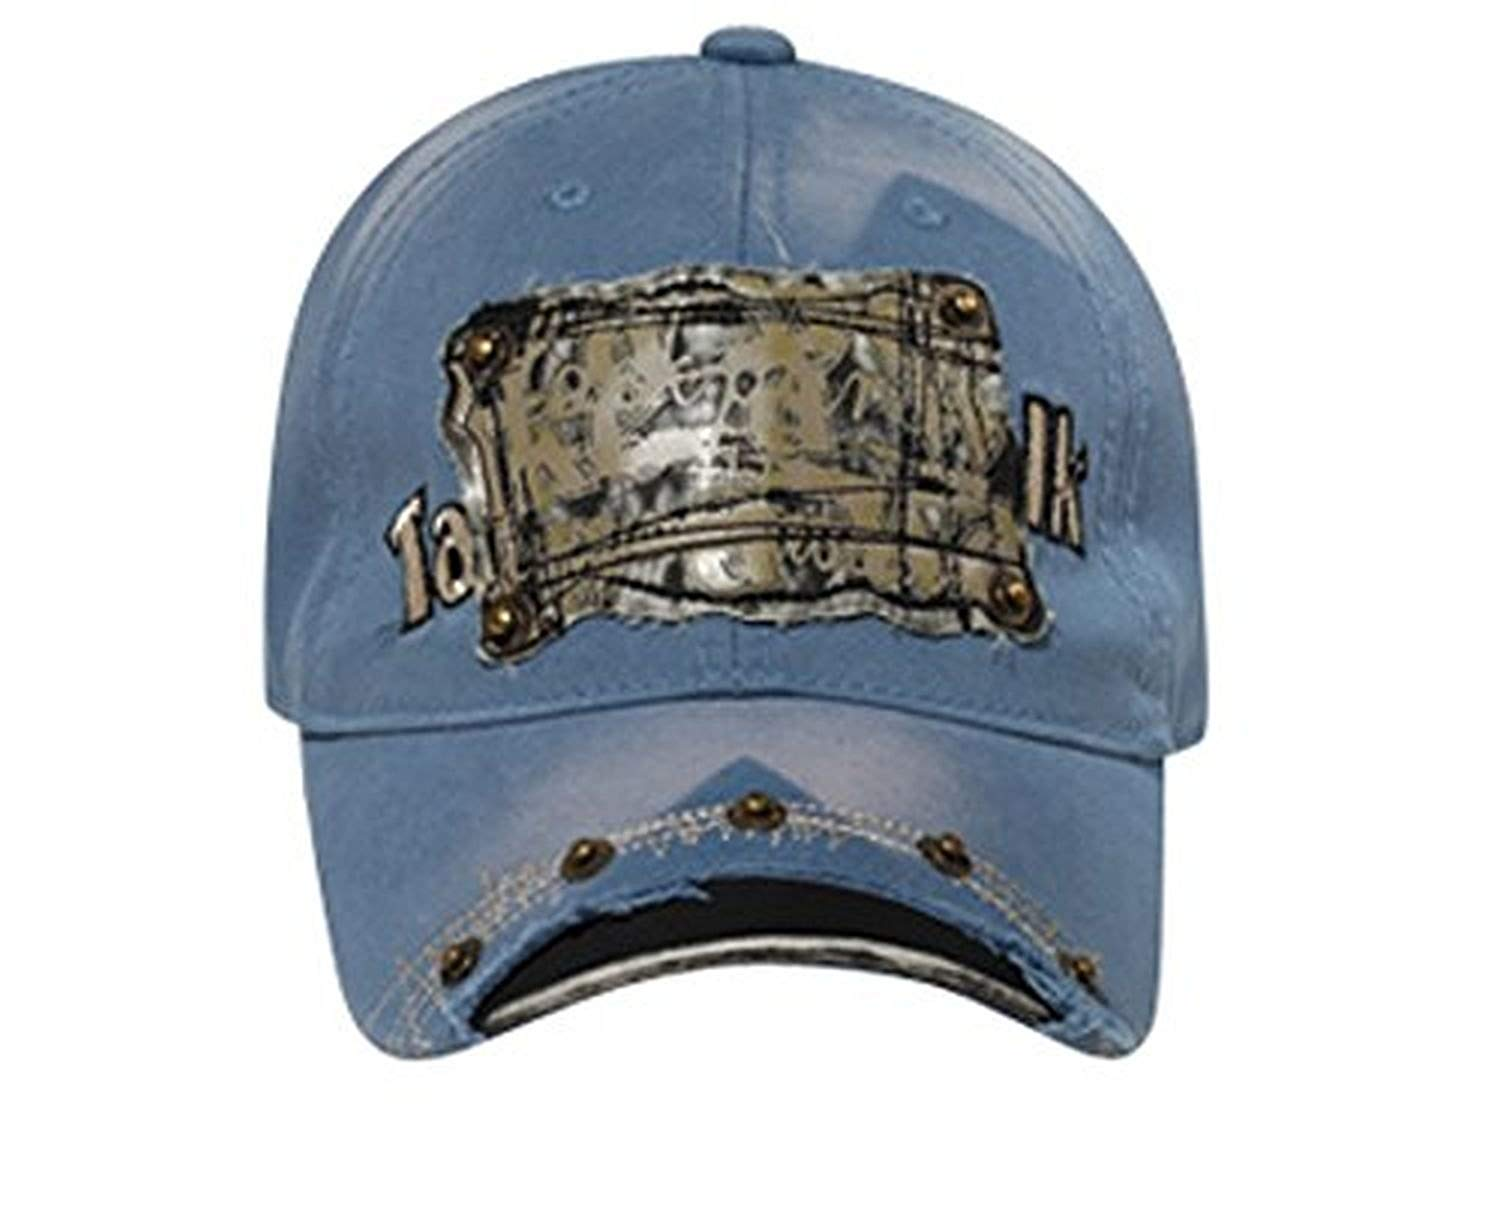 Hats & Caps Shop Faux Leather Patch & Rivets Distressed Visor Caps - By TheTargetBuys